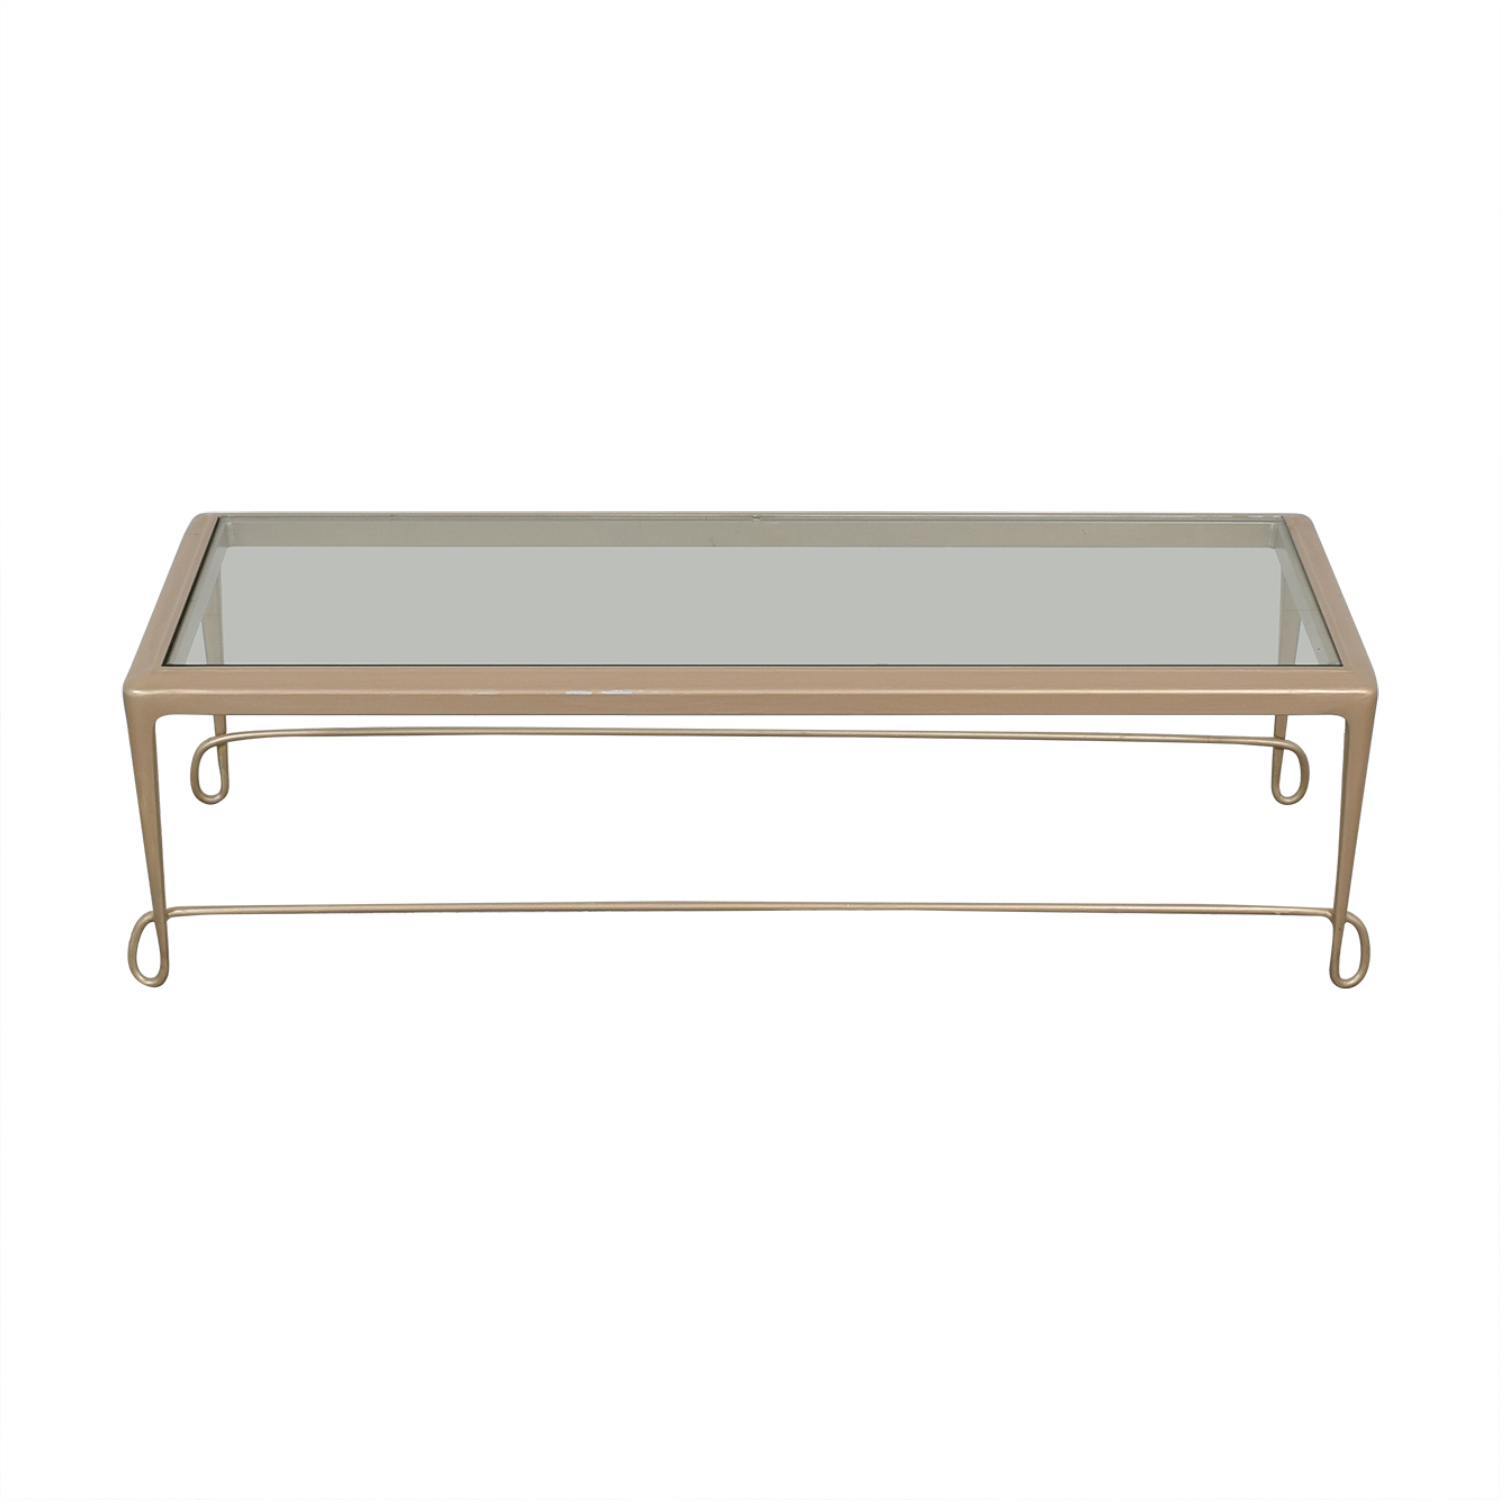 64 Off Barbara Barry Gl Top Coffee Table Tables